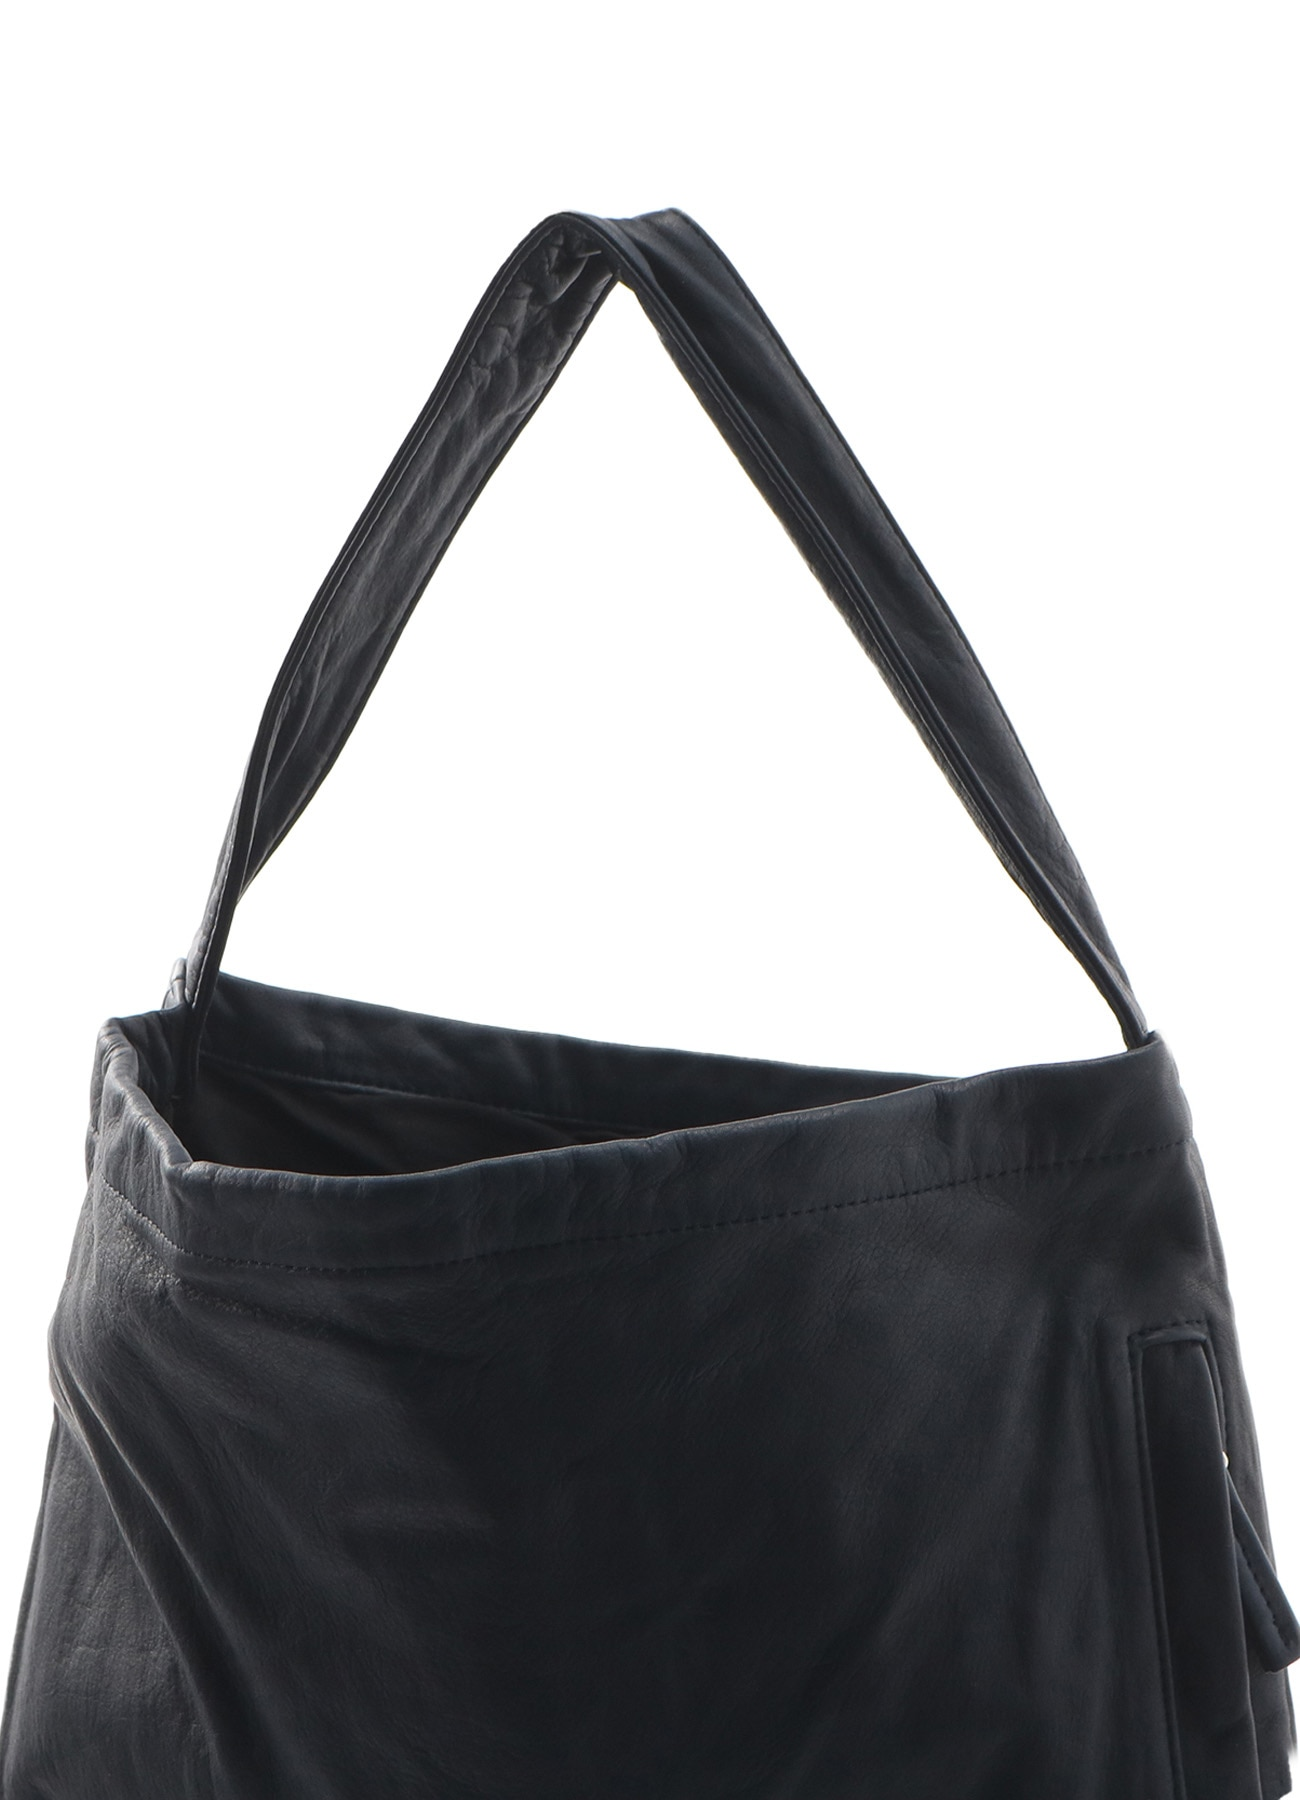 SOFT OIL LEATHER SIDE ZIP SHOULDER BAG